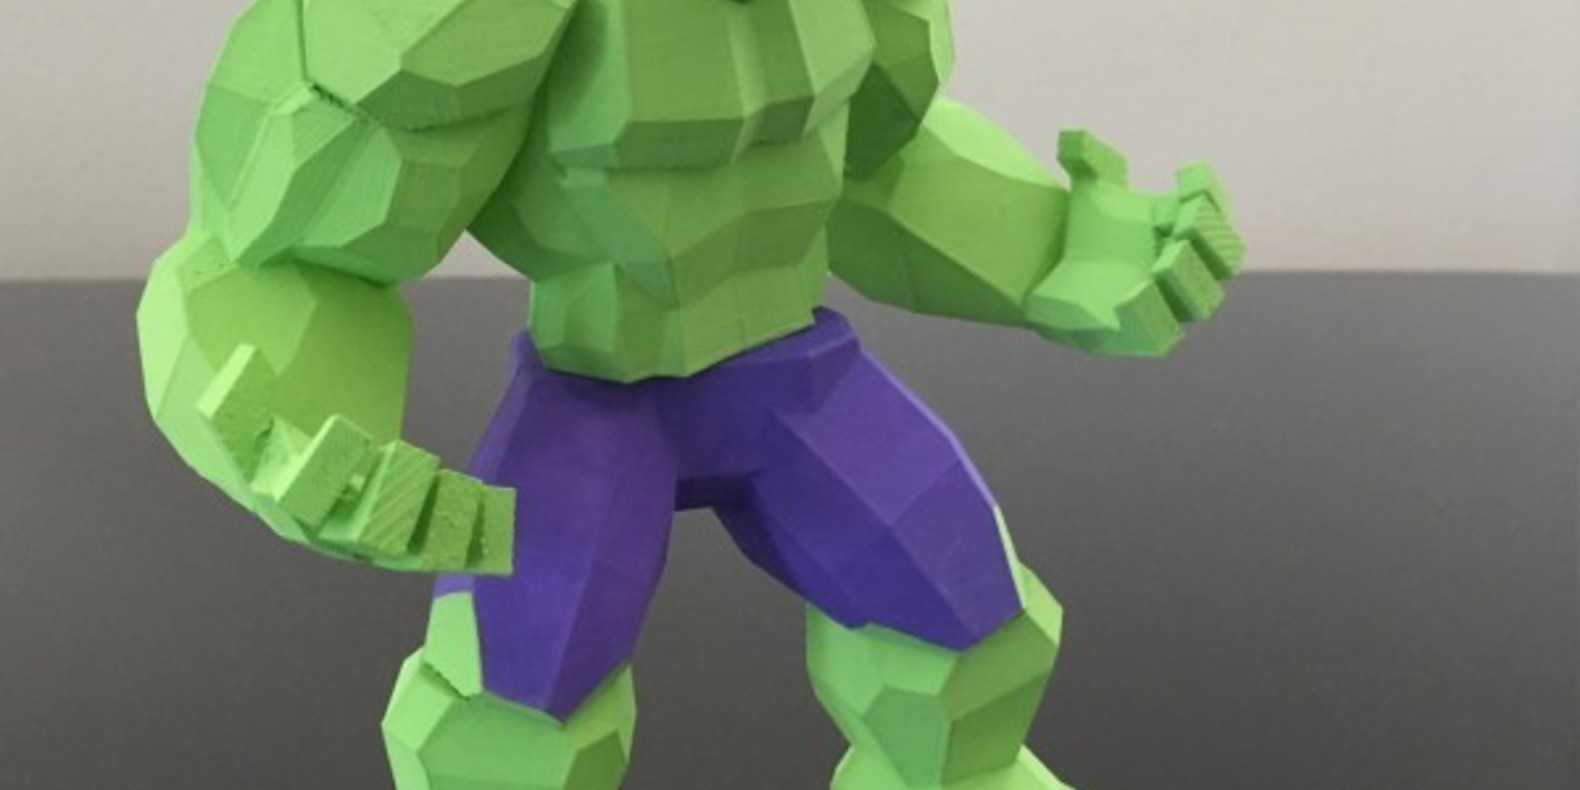 Hulk en low poly biglildesign fichier STL impression 3D 3D printing marvel